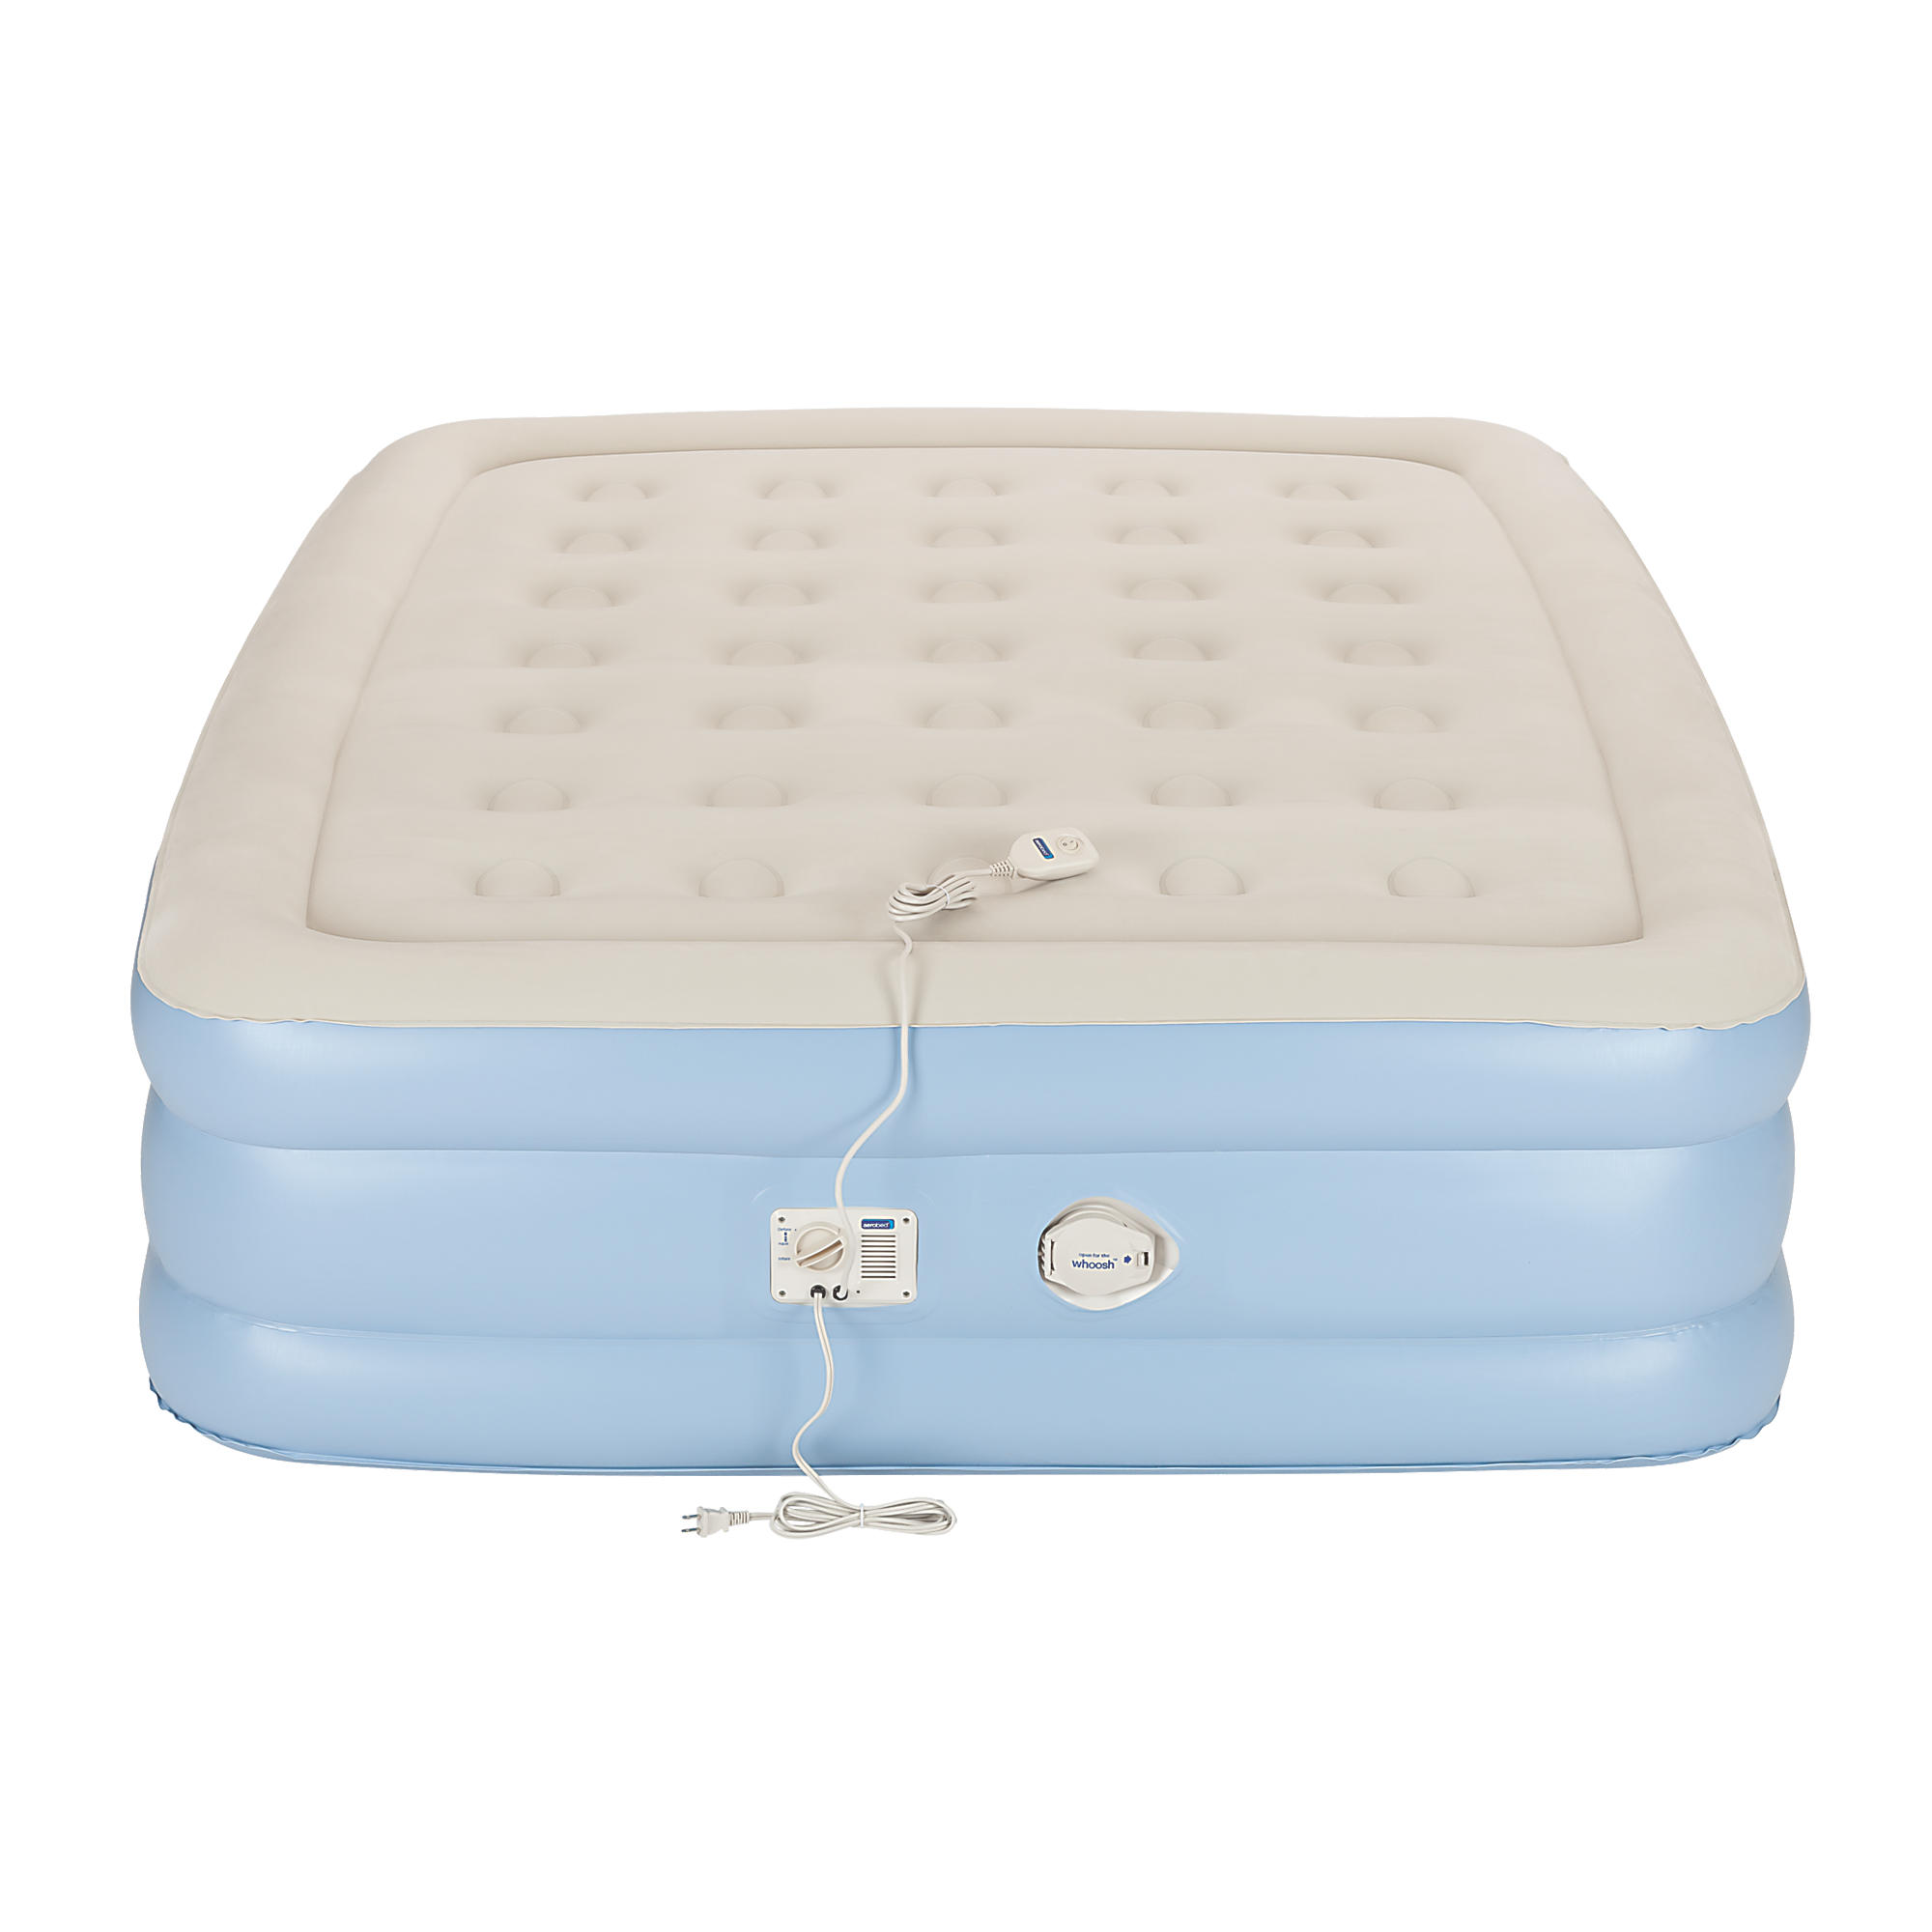 Aerobed Comfort Queen With Built In Dial Pump 2000030949 Available At Canadian Tire